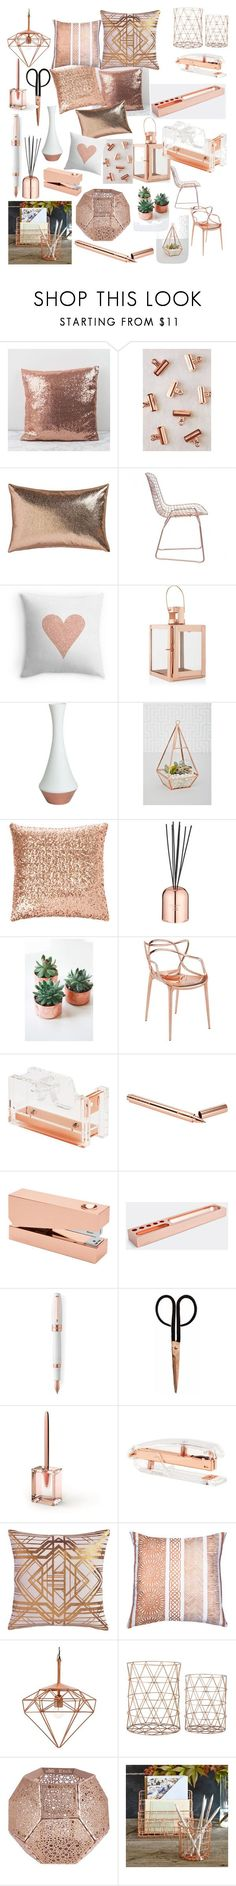 New room decor urban pillows ideas Rose Gold Rooms, Rose Gold Decor, Gray Decor, Gold Bedroom, Bedroom Decor, Bedroom Ideas, Bedroom Furniture, Copper Bedroom, Living Furniture